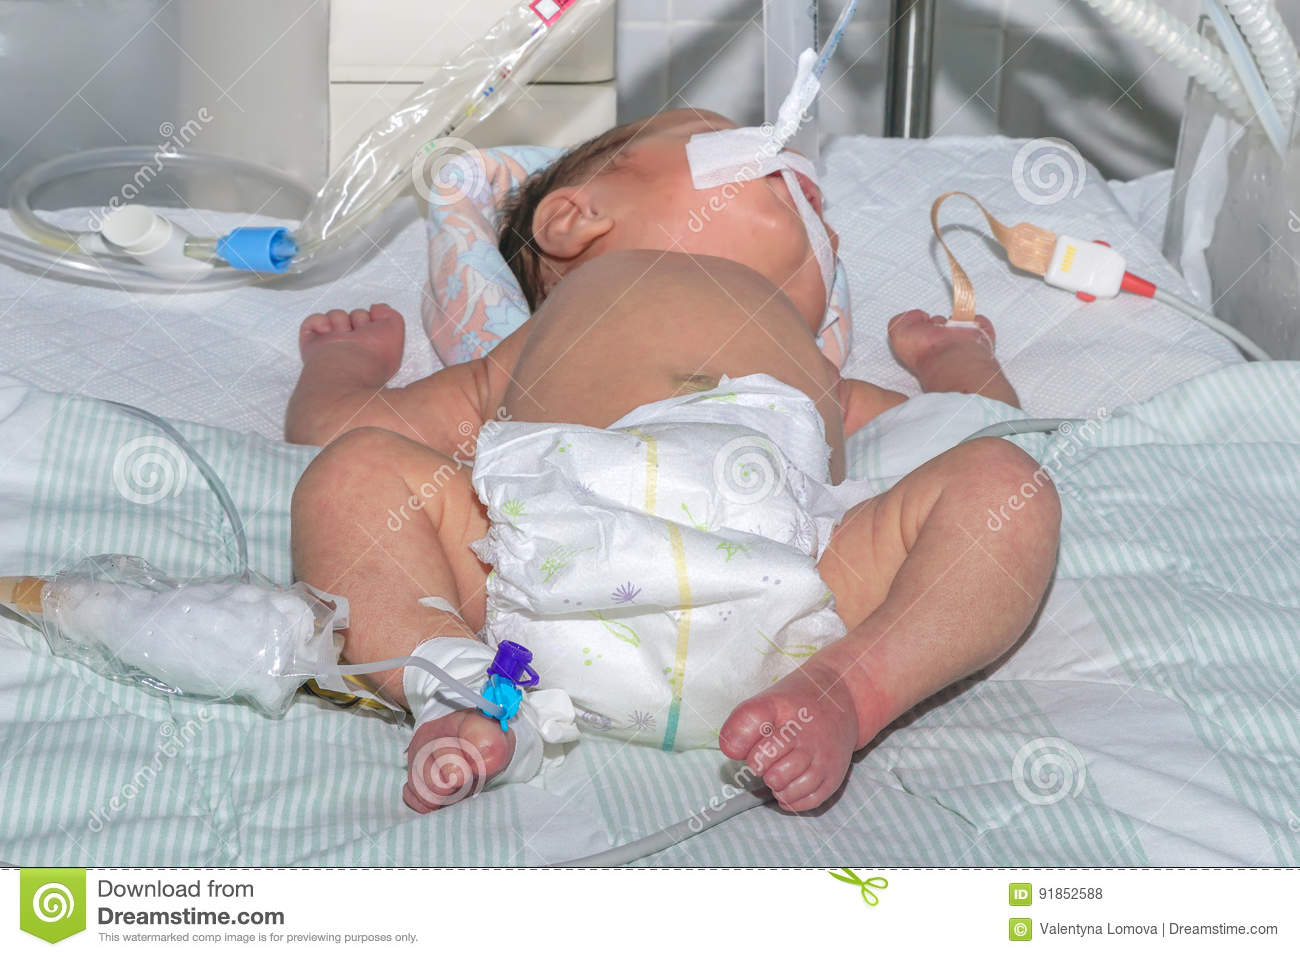 Newborn baby on breathing machine with pulse oximeter sensor and peripheral intravenous catheter at children`s hospital